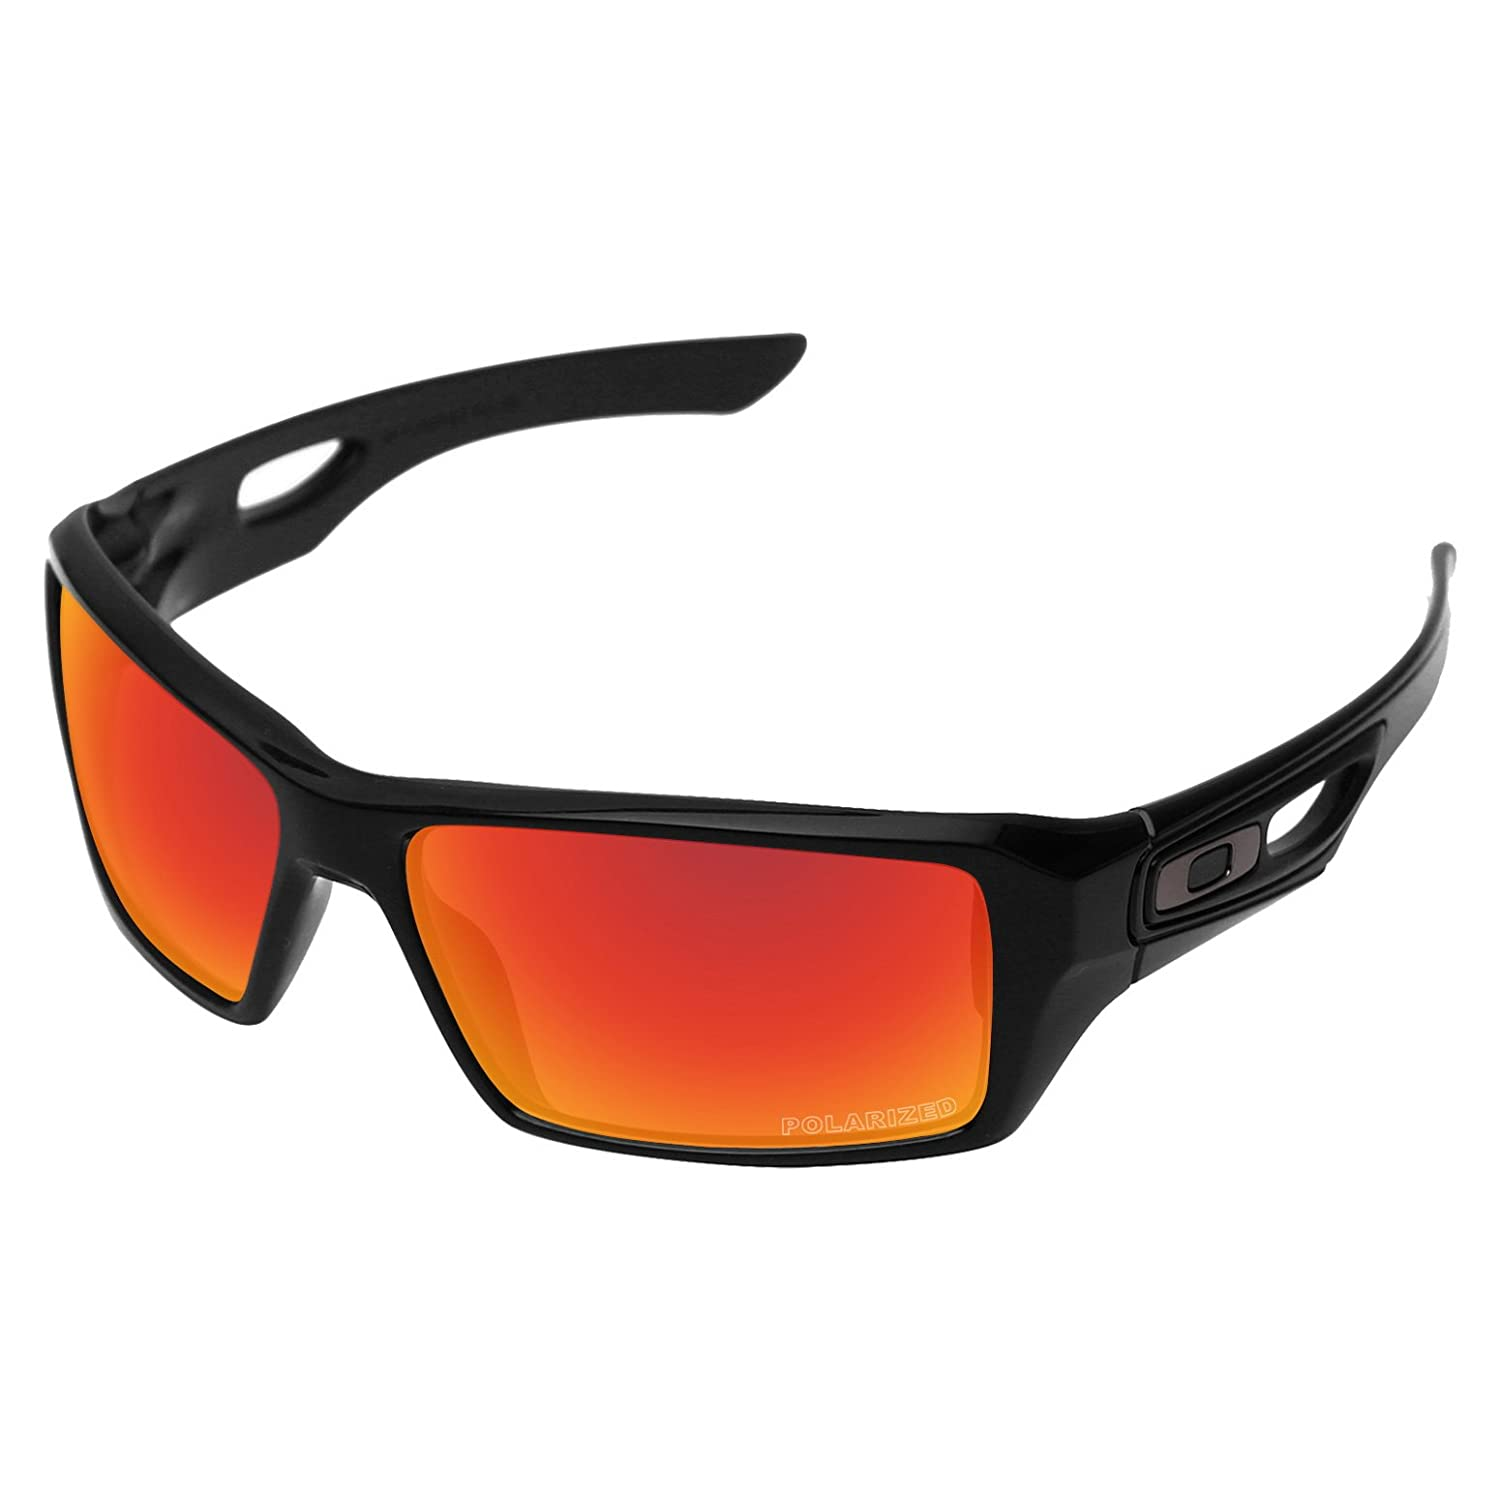 765028fbdb1 Tintart Performance Replacement Lenses for Oakley Eyepatch 1 2 Sunglass  Polarized Etched  Amazon.in  Clothing   Accessories